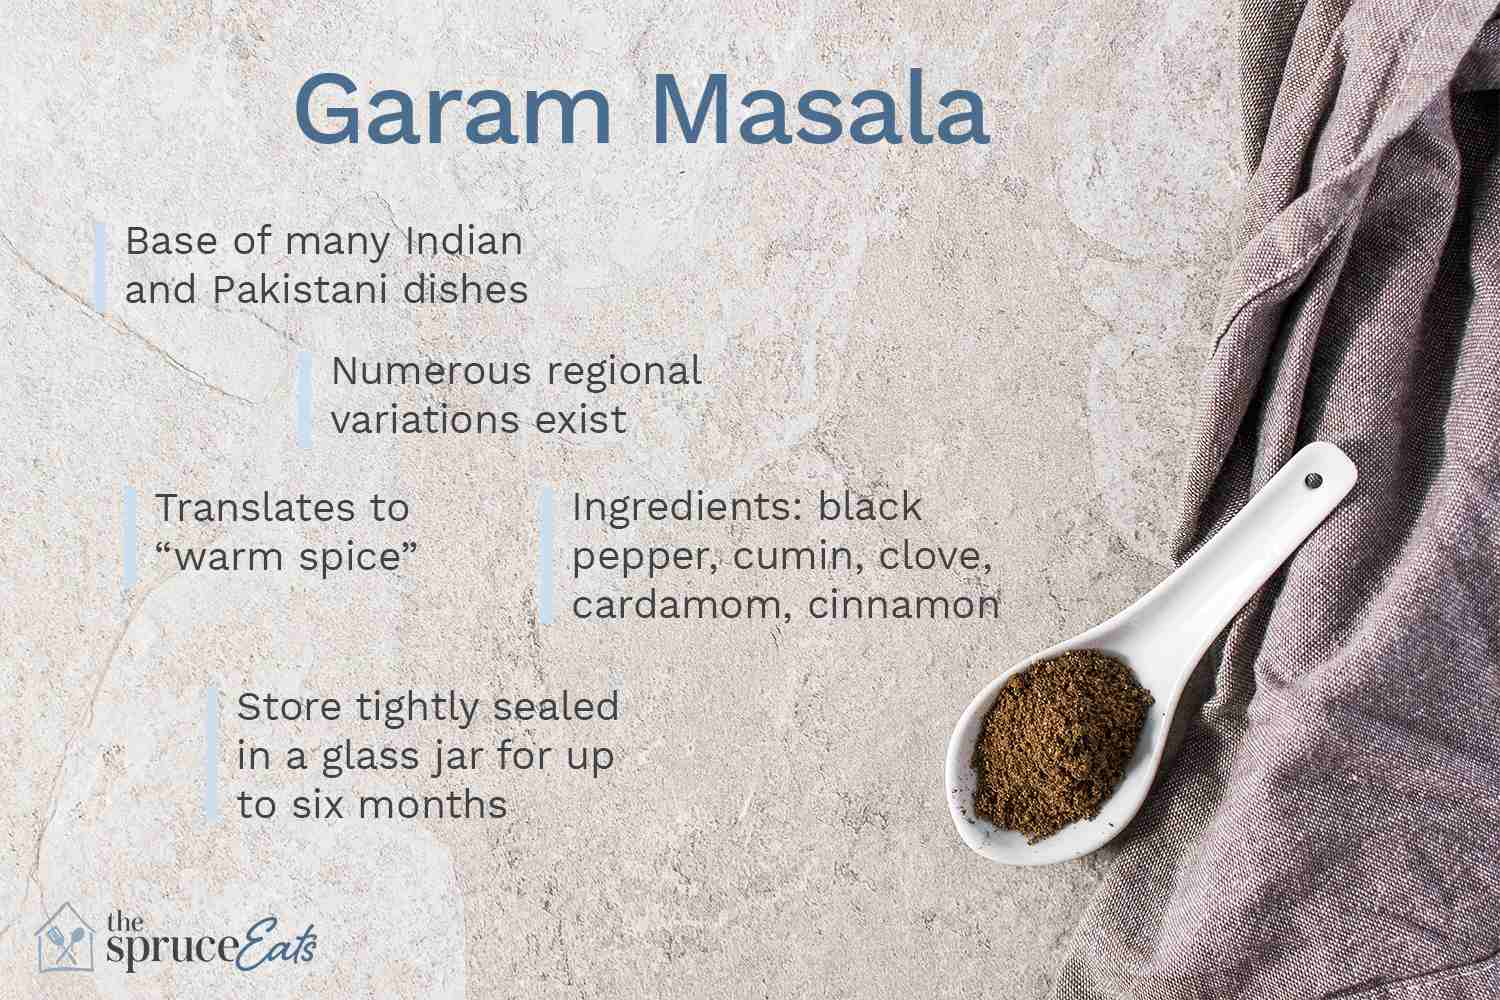 What Is Garam Masala and How Is It Used?